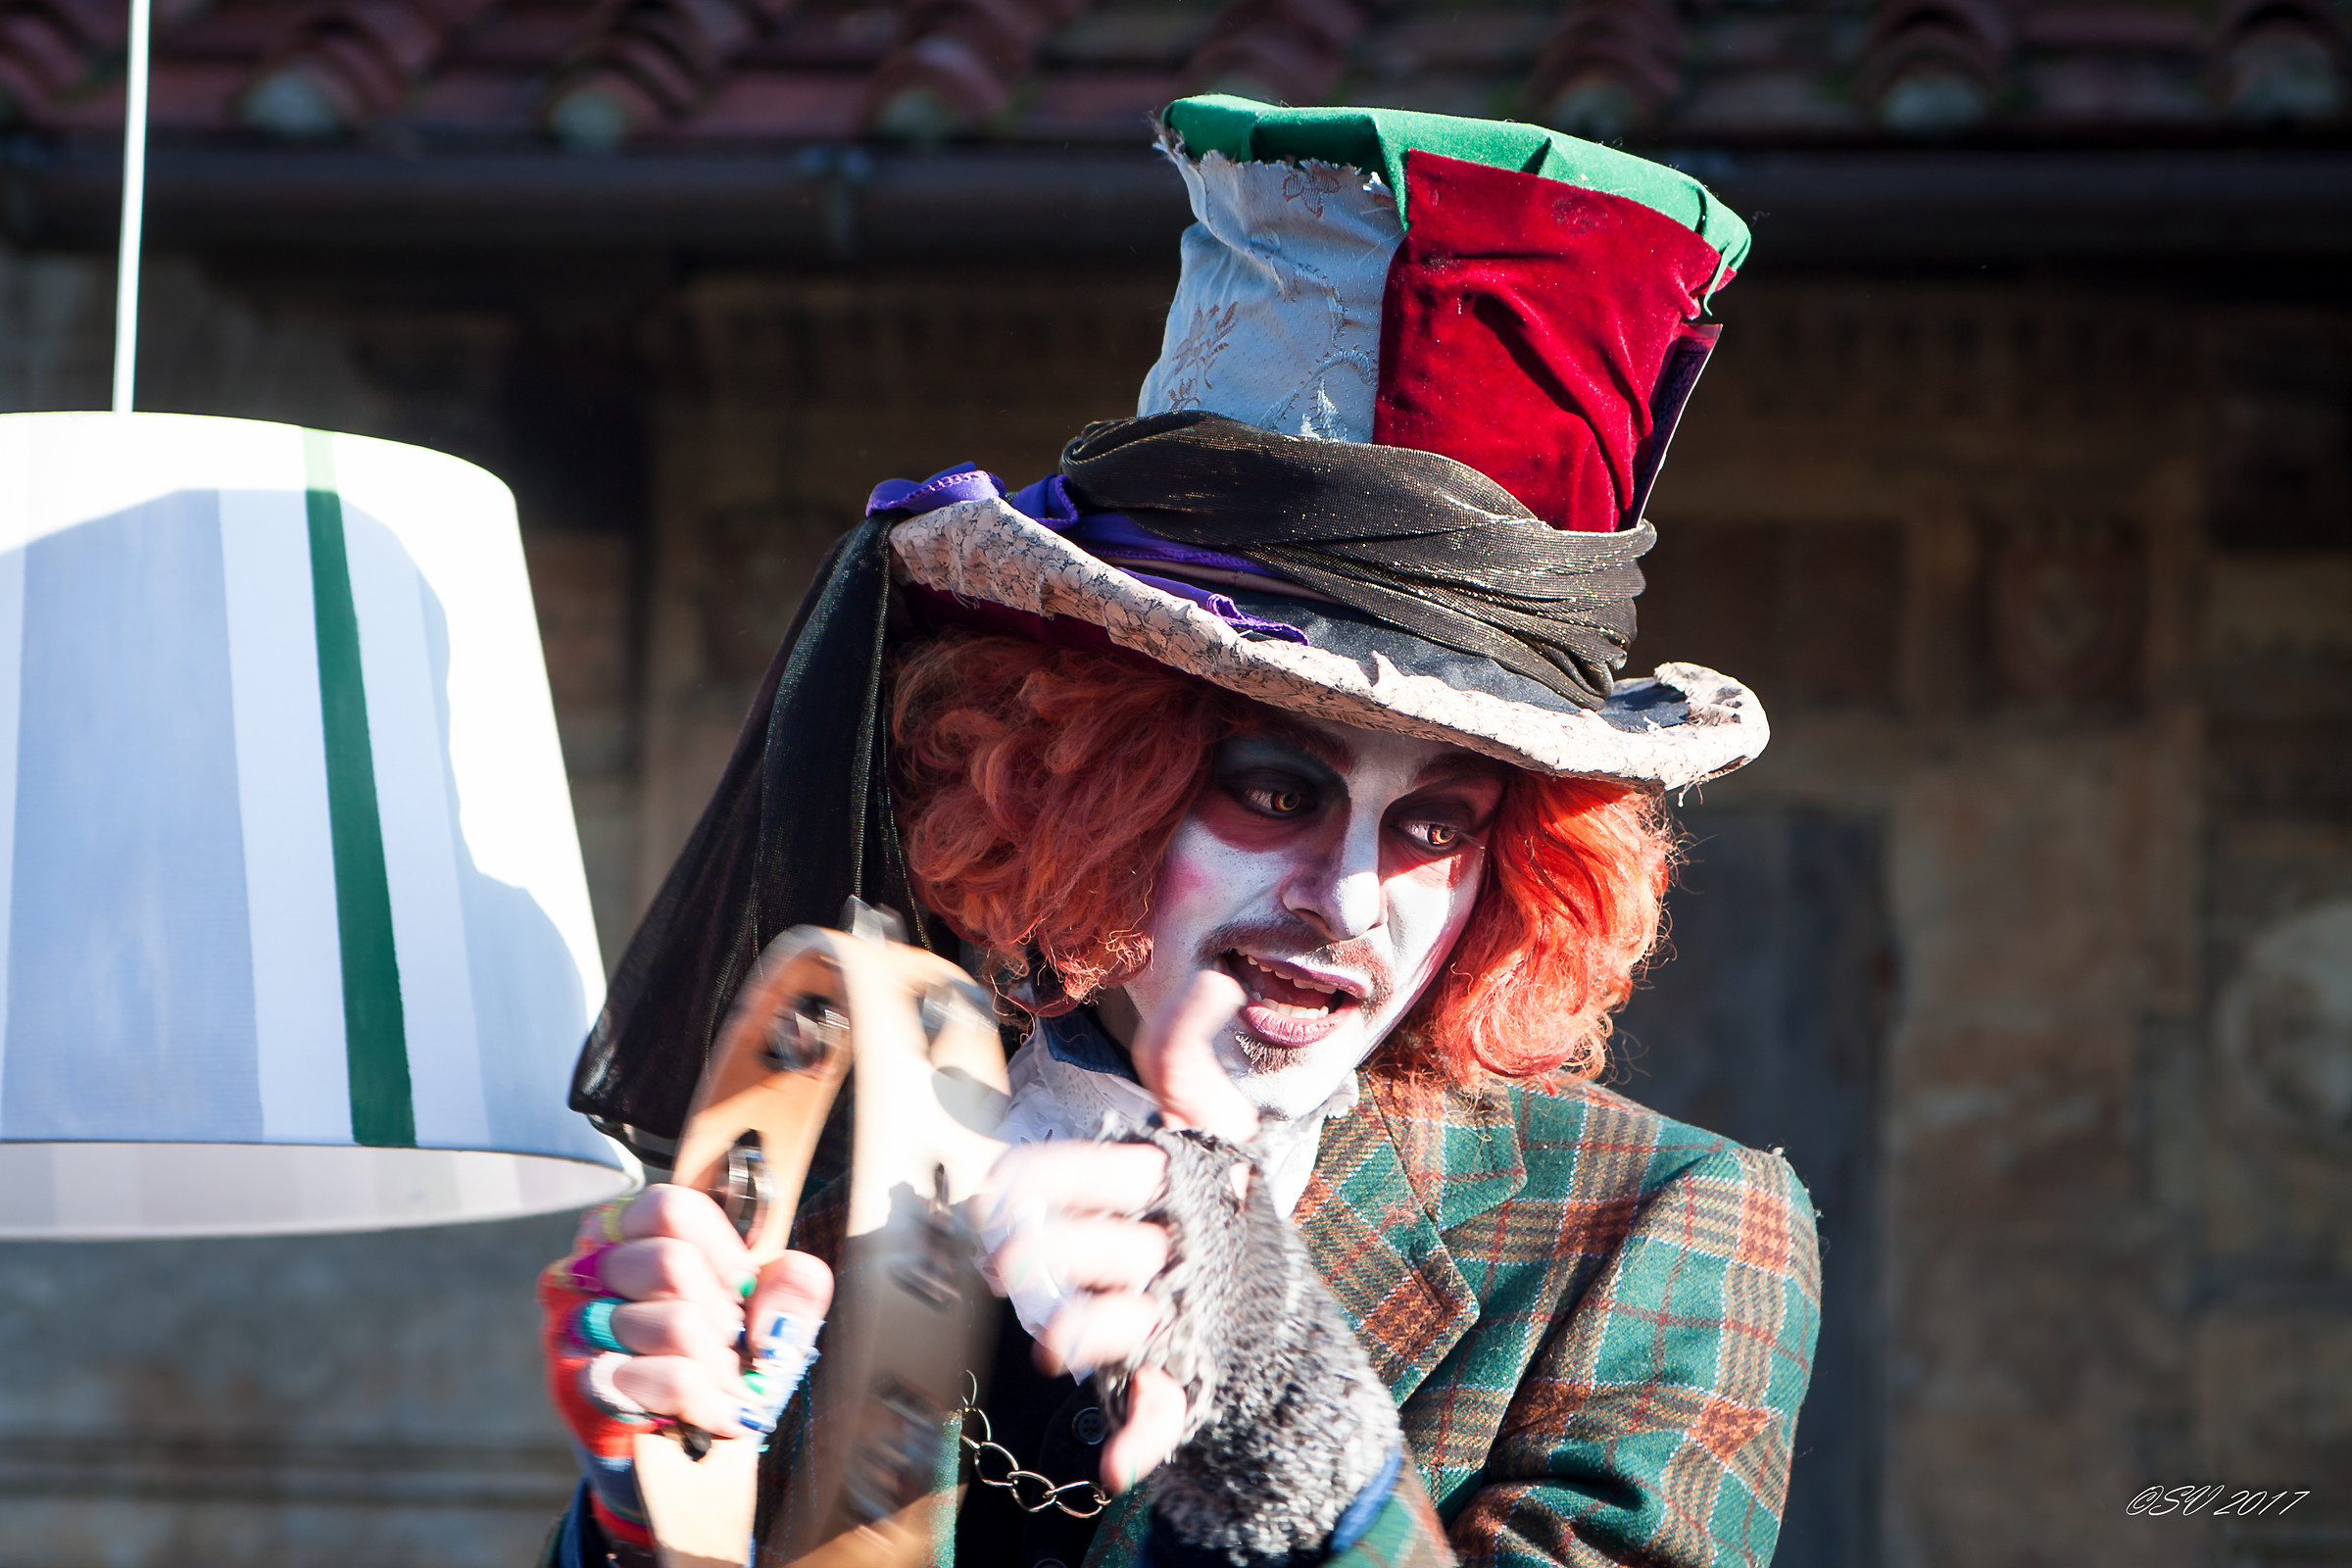 The mad Hatter...